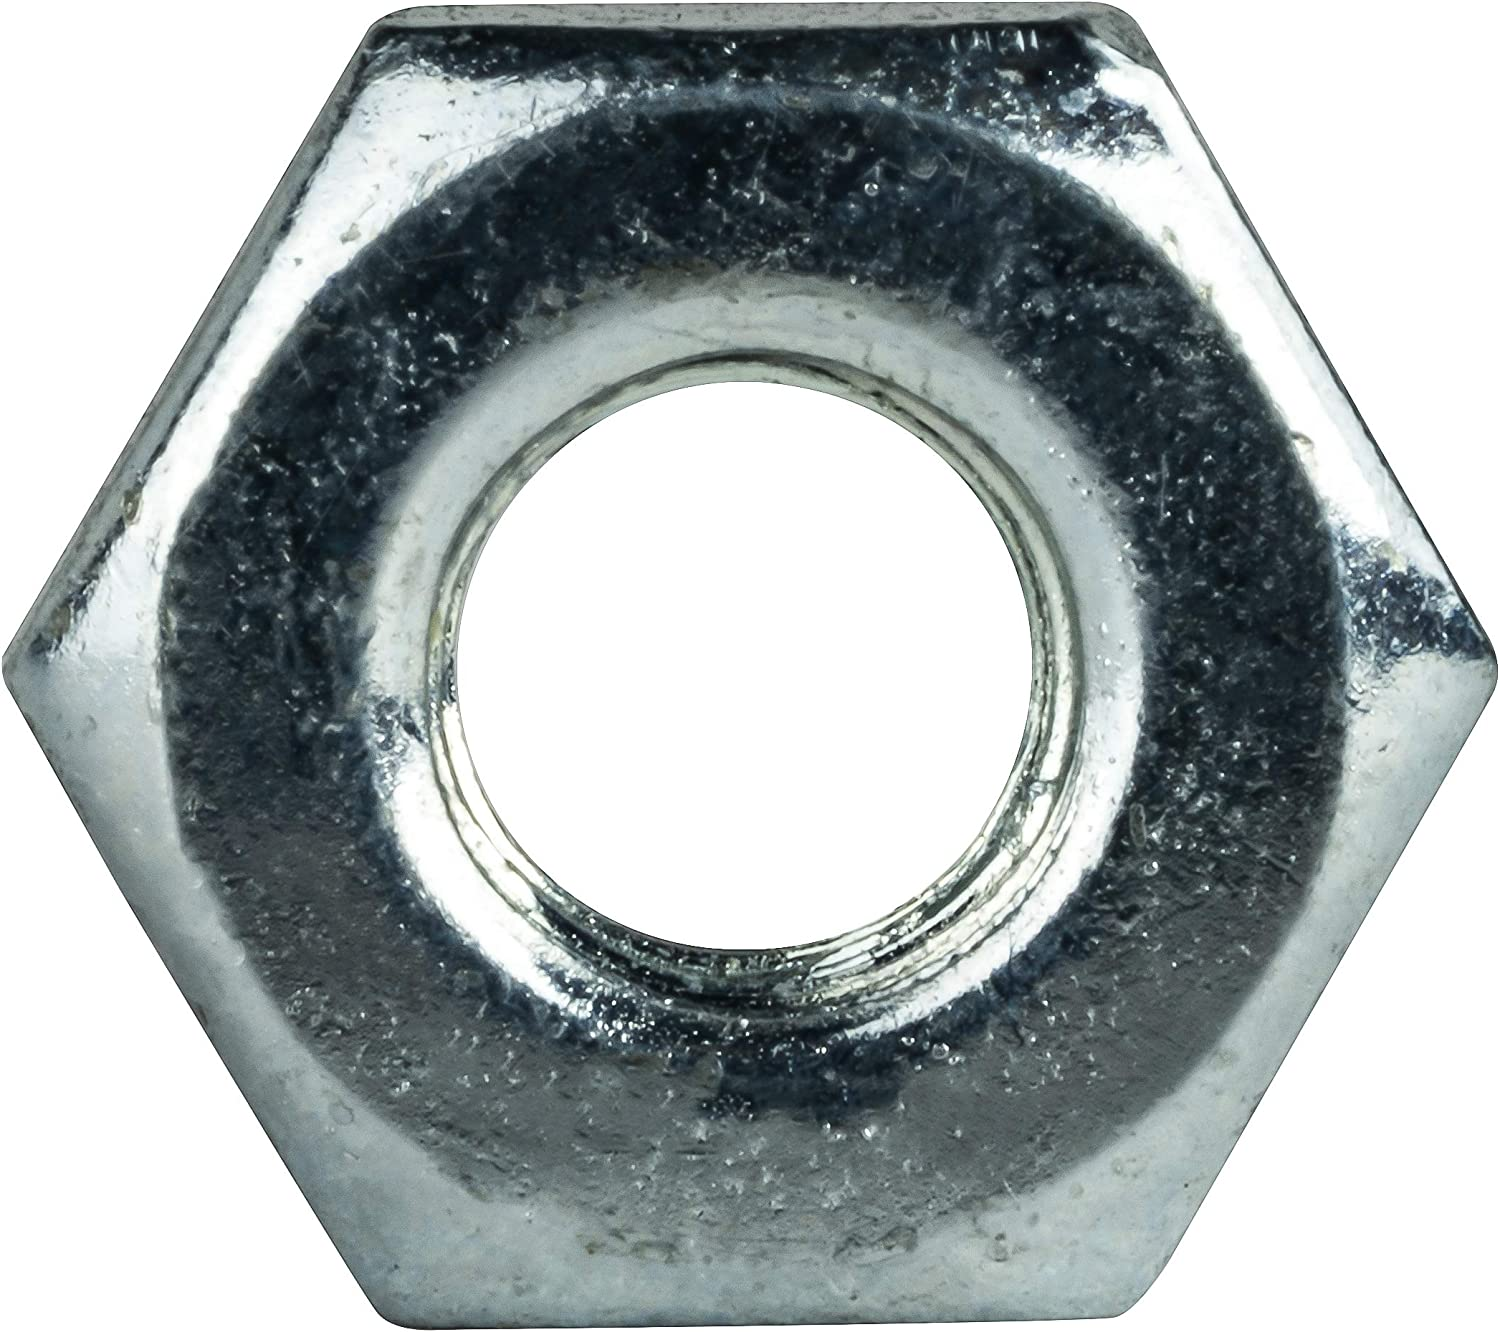 #3-56 Hex Machine Screw Nuts Grade 2 Quantity 100 by Fastenere Electro Zinc Plated Steel /& Clear Finish